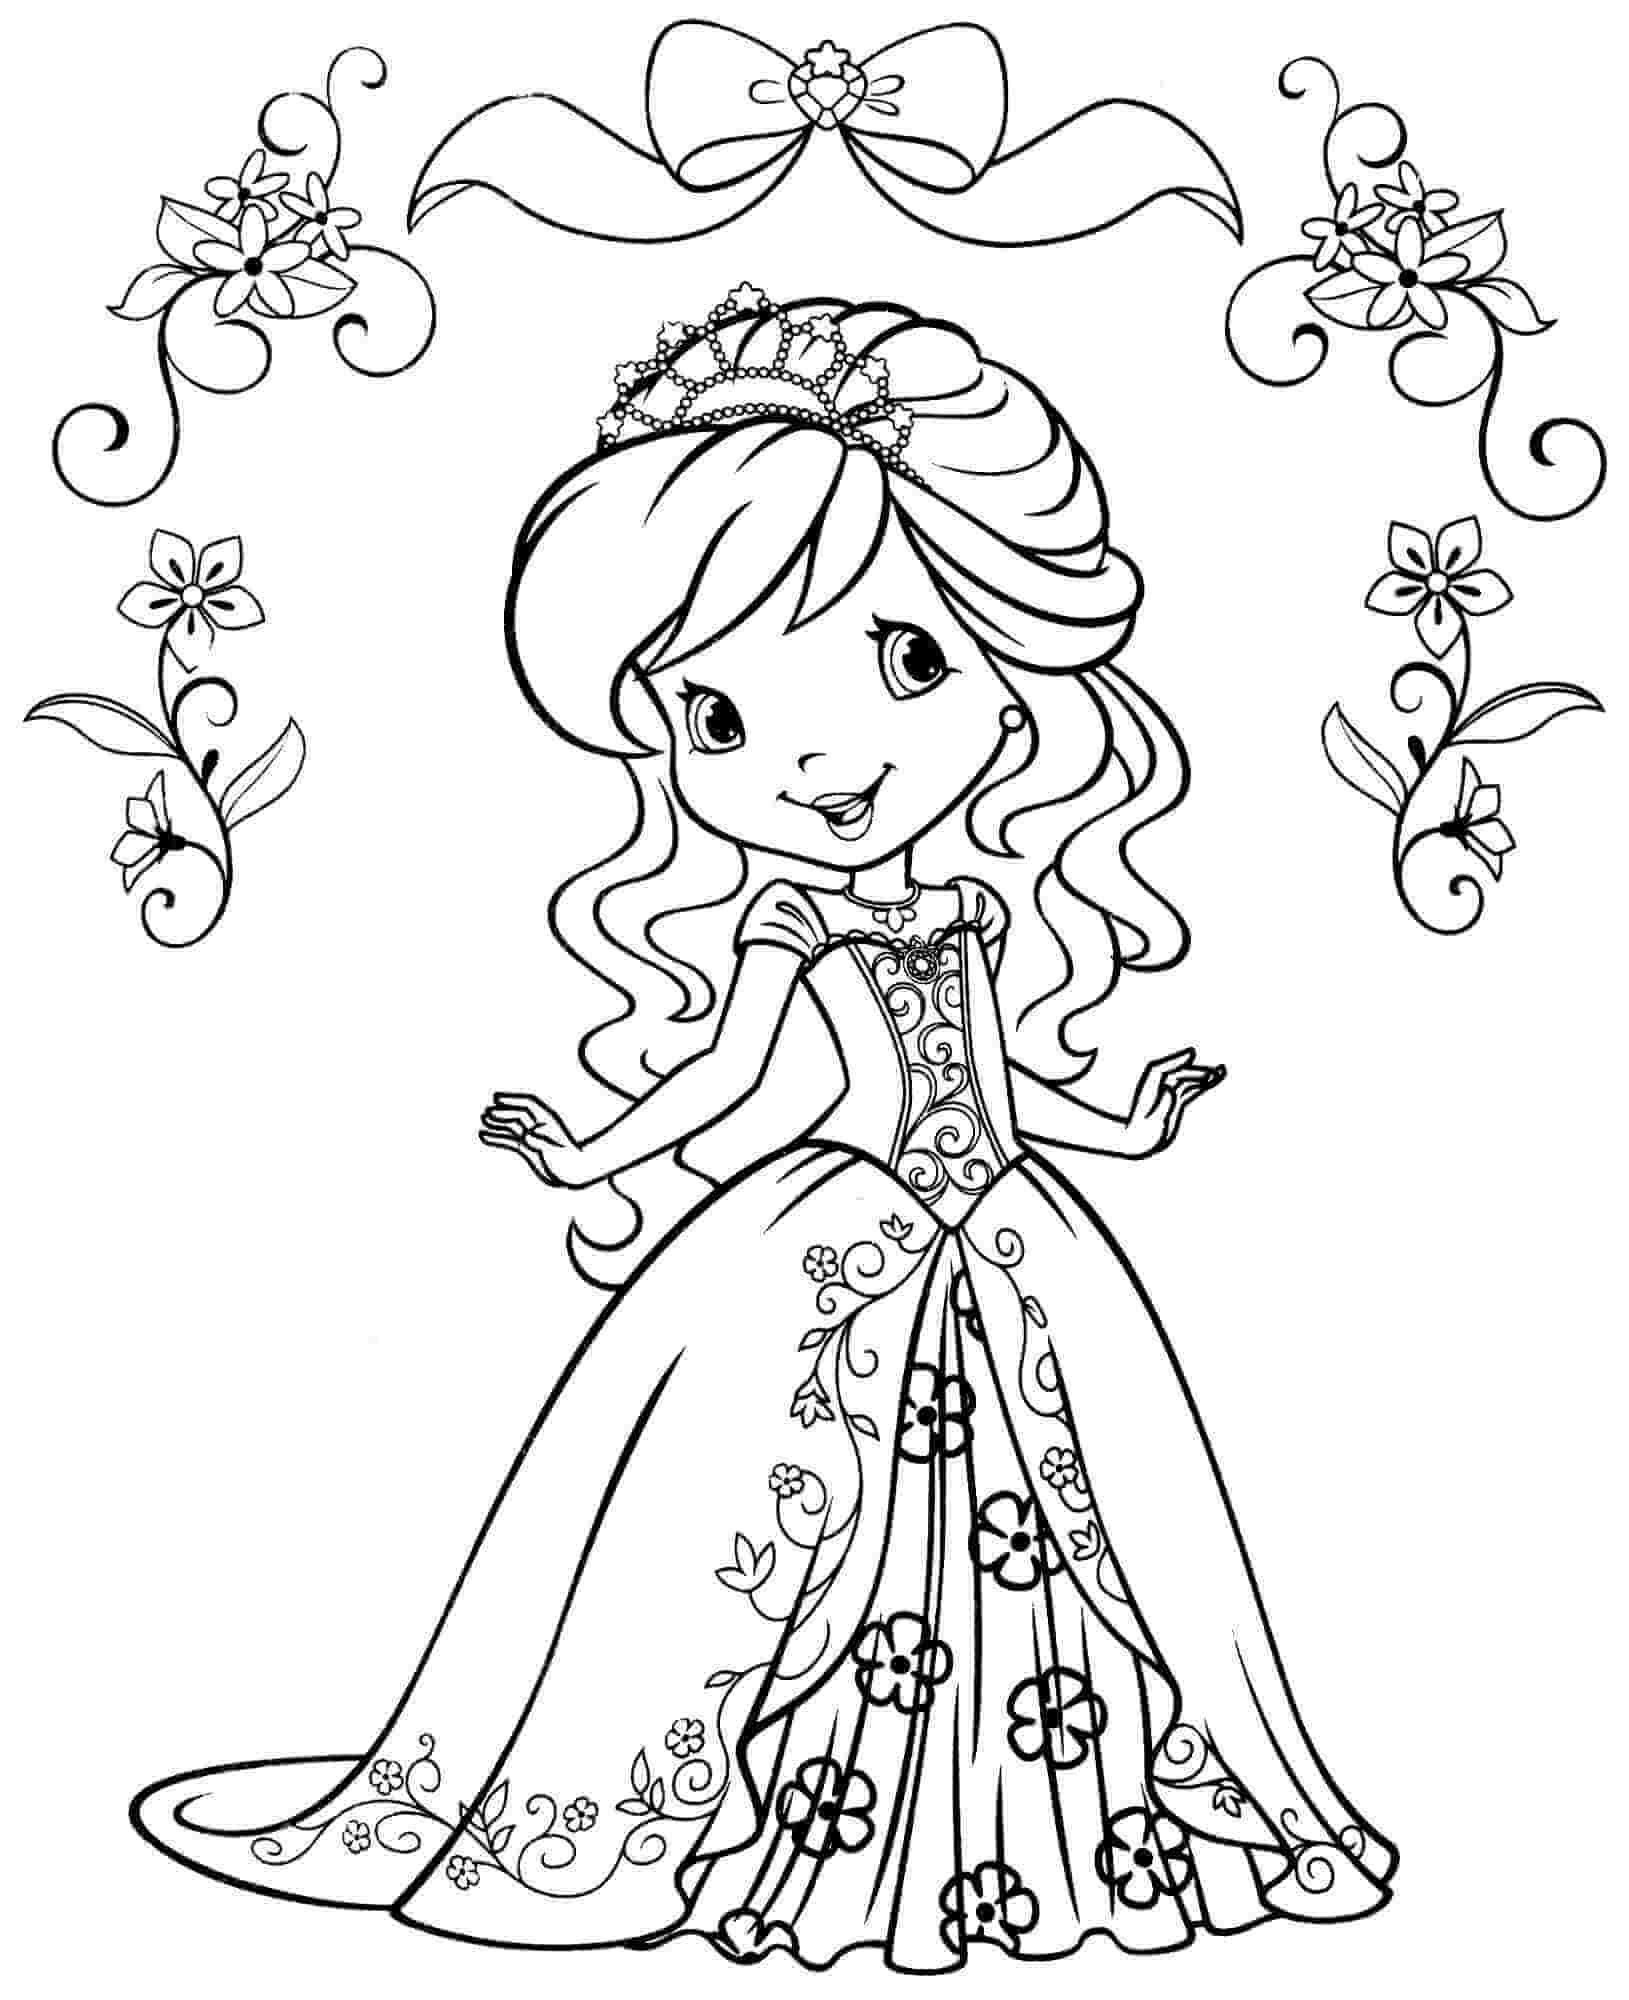 Coloring Page Princess Valentine Youngandtae Com In 2020 Strawberry Shortcake Coloring Pages Princess Coloring Pages Cartoon Coloring Pages